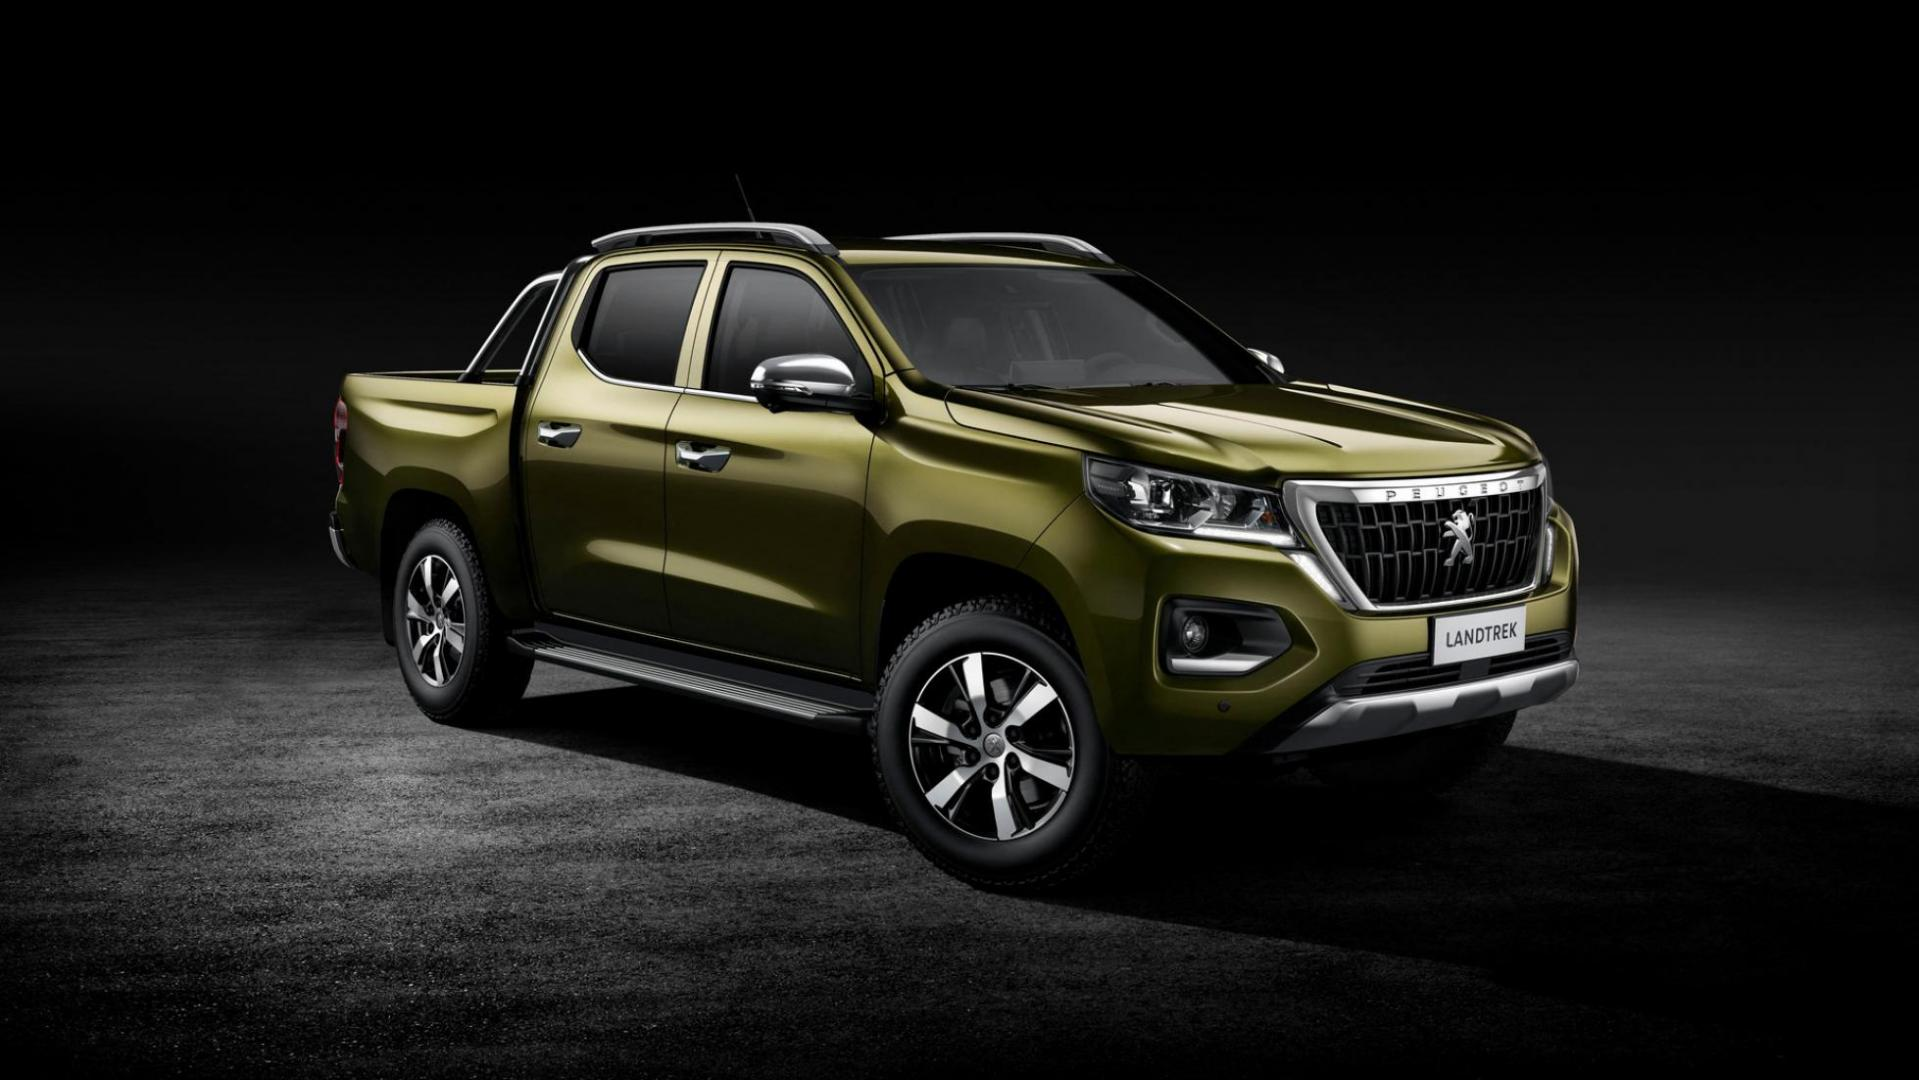 Peugeot Landtrek Pick-up 2020Peugeot Landtrek Pick-up 2020